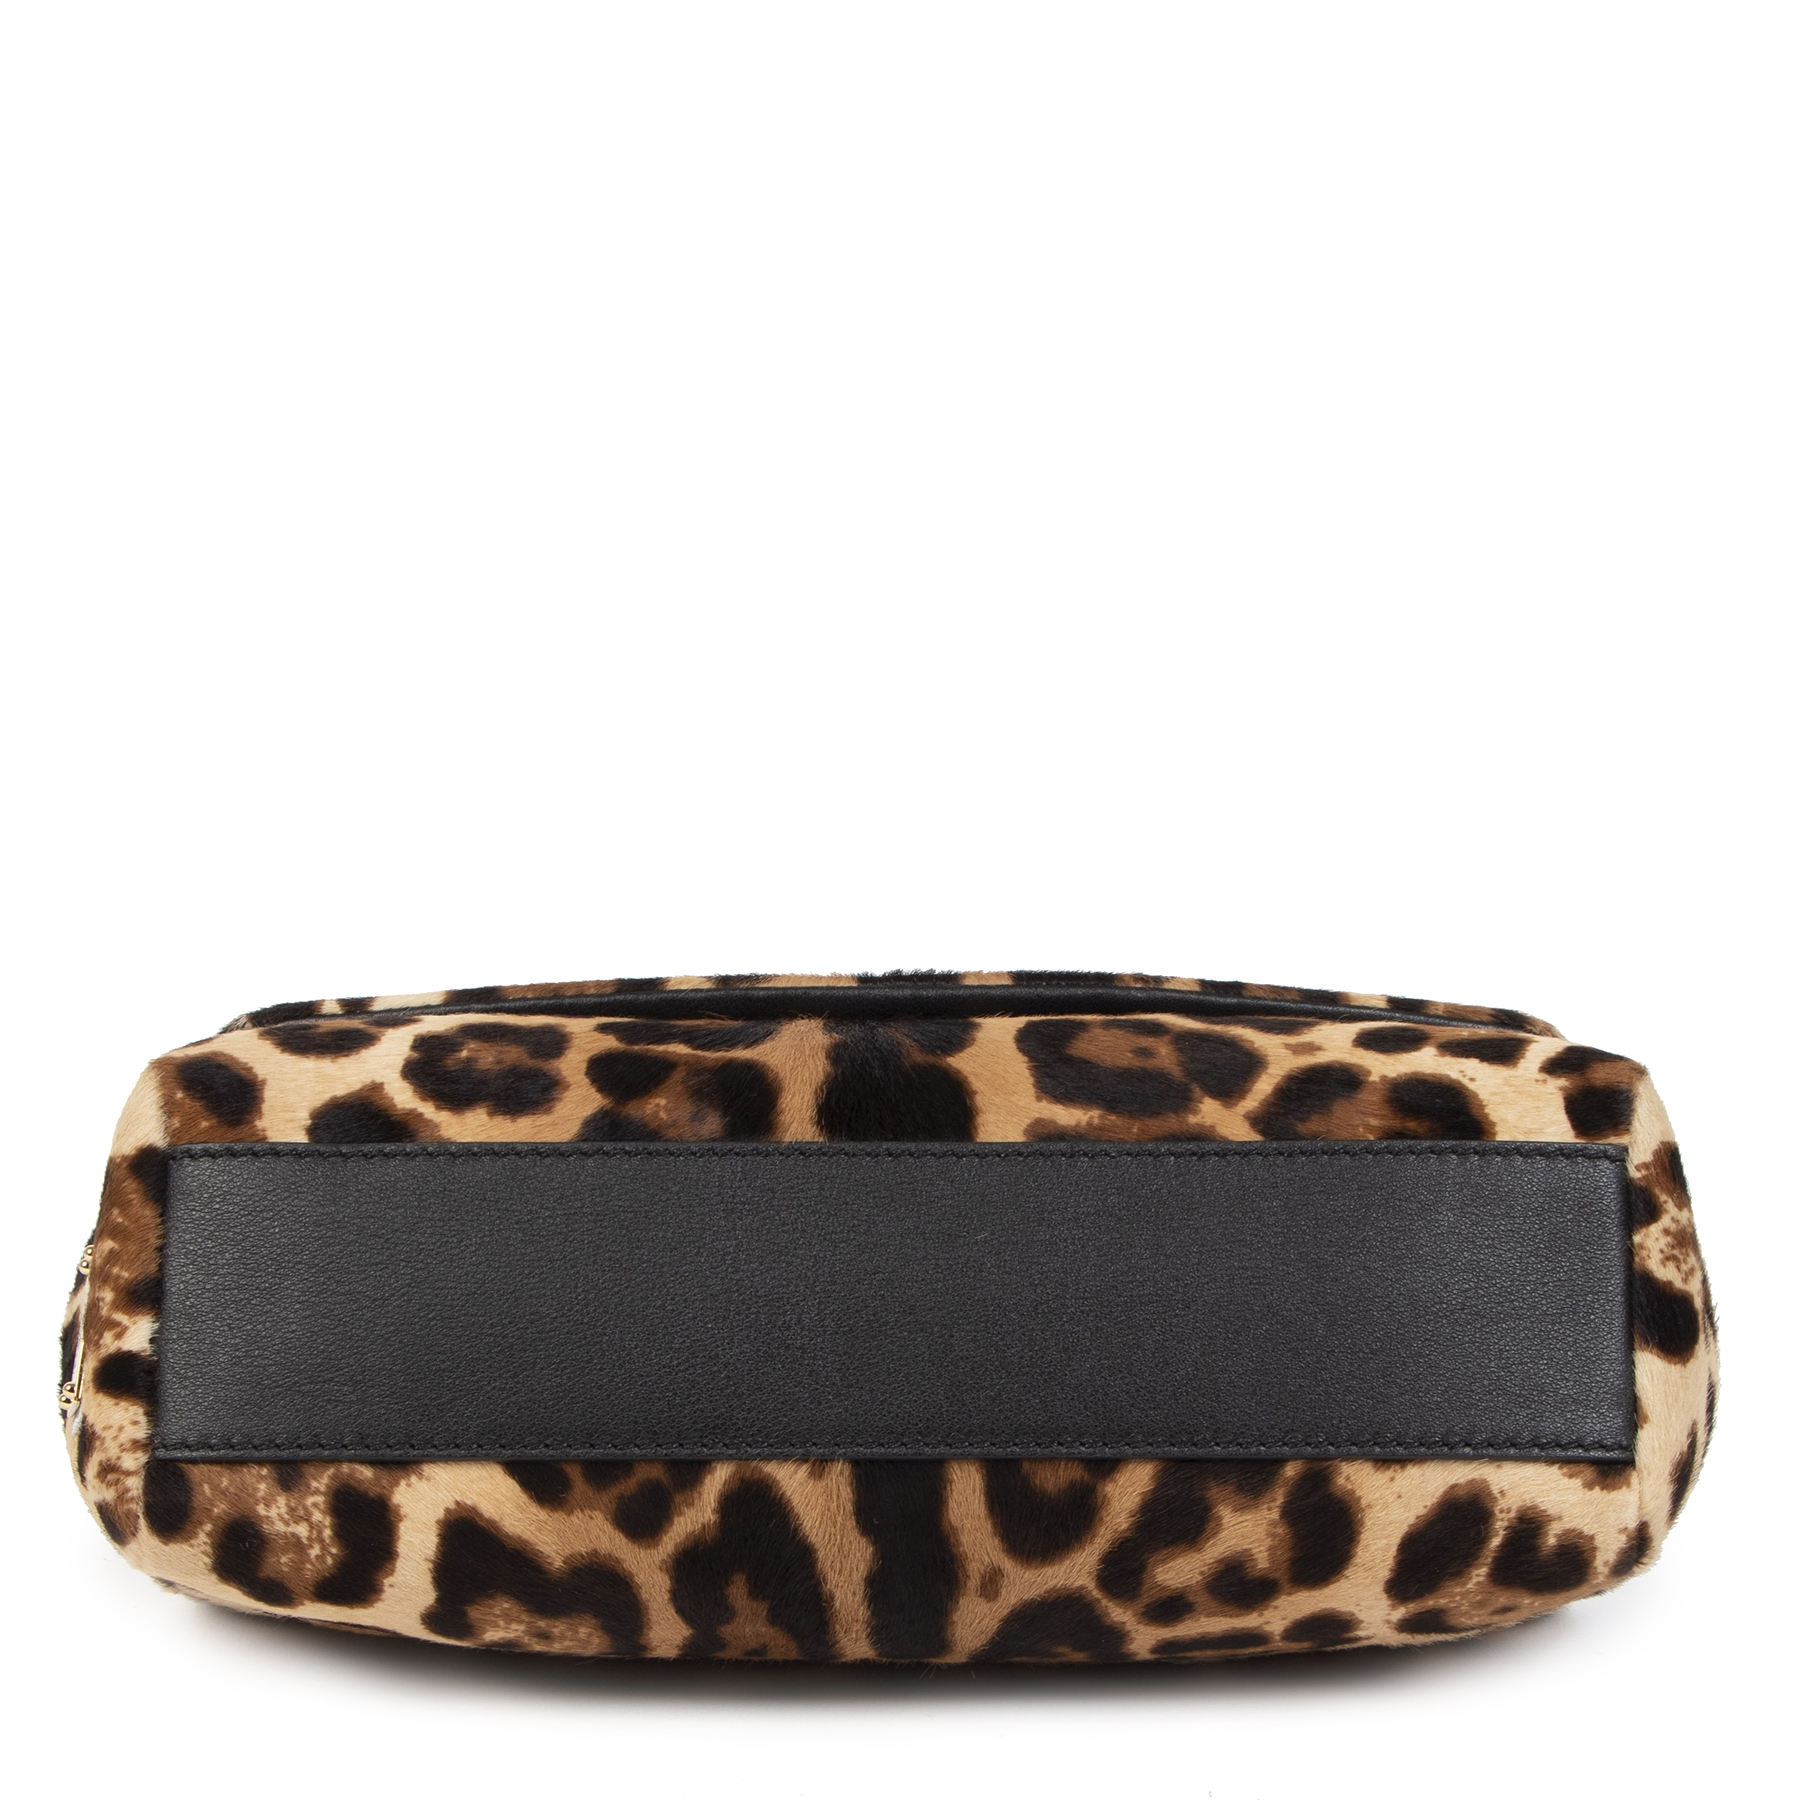 Dolce & Gabbana Leopard Top Handle Bag